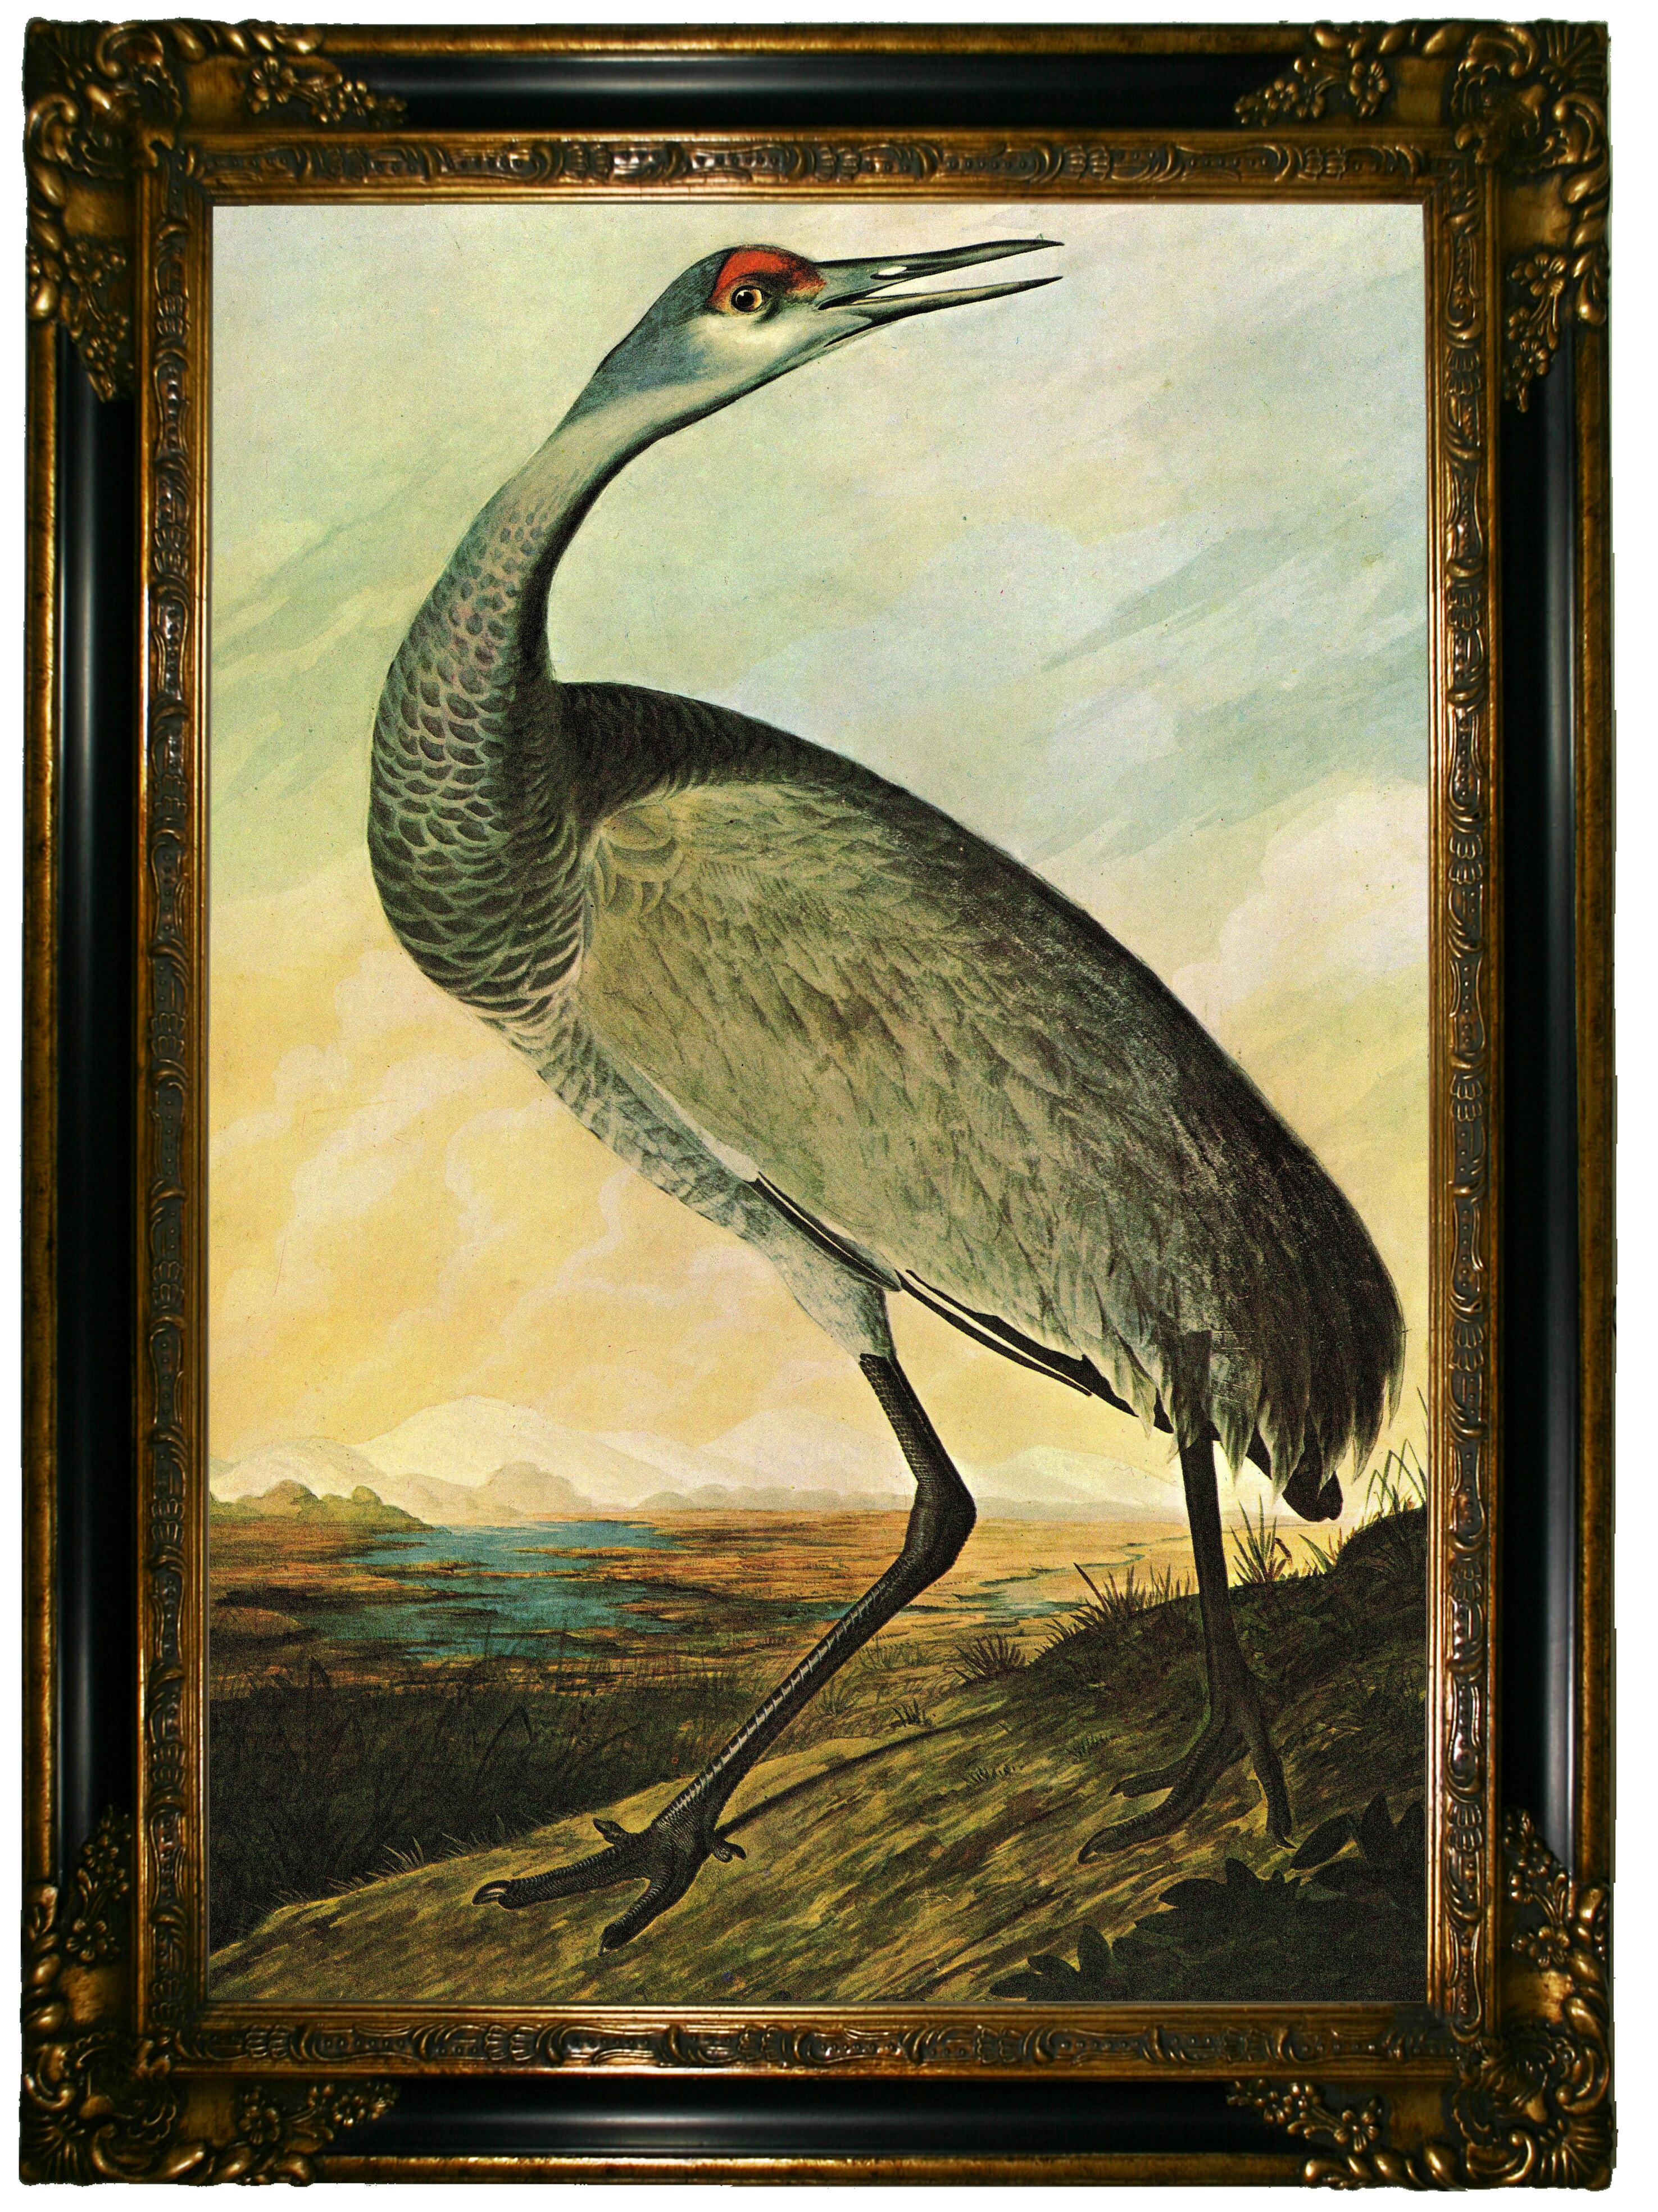 Darby Home Co Sandhill Crane\' Framed Graphic Art Print on Canvas ...